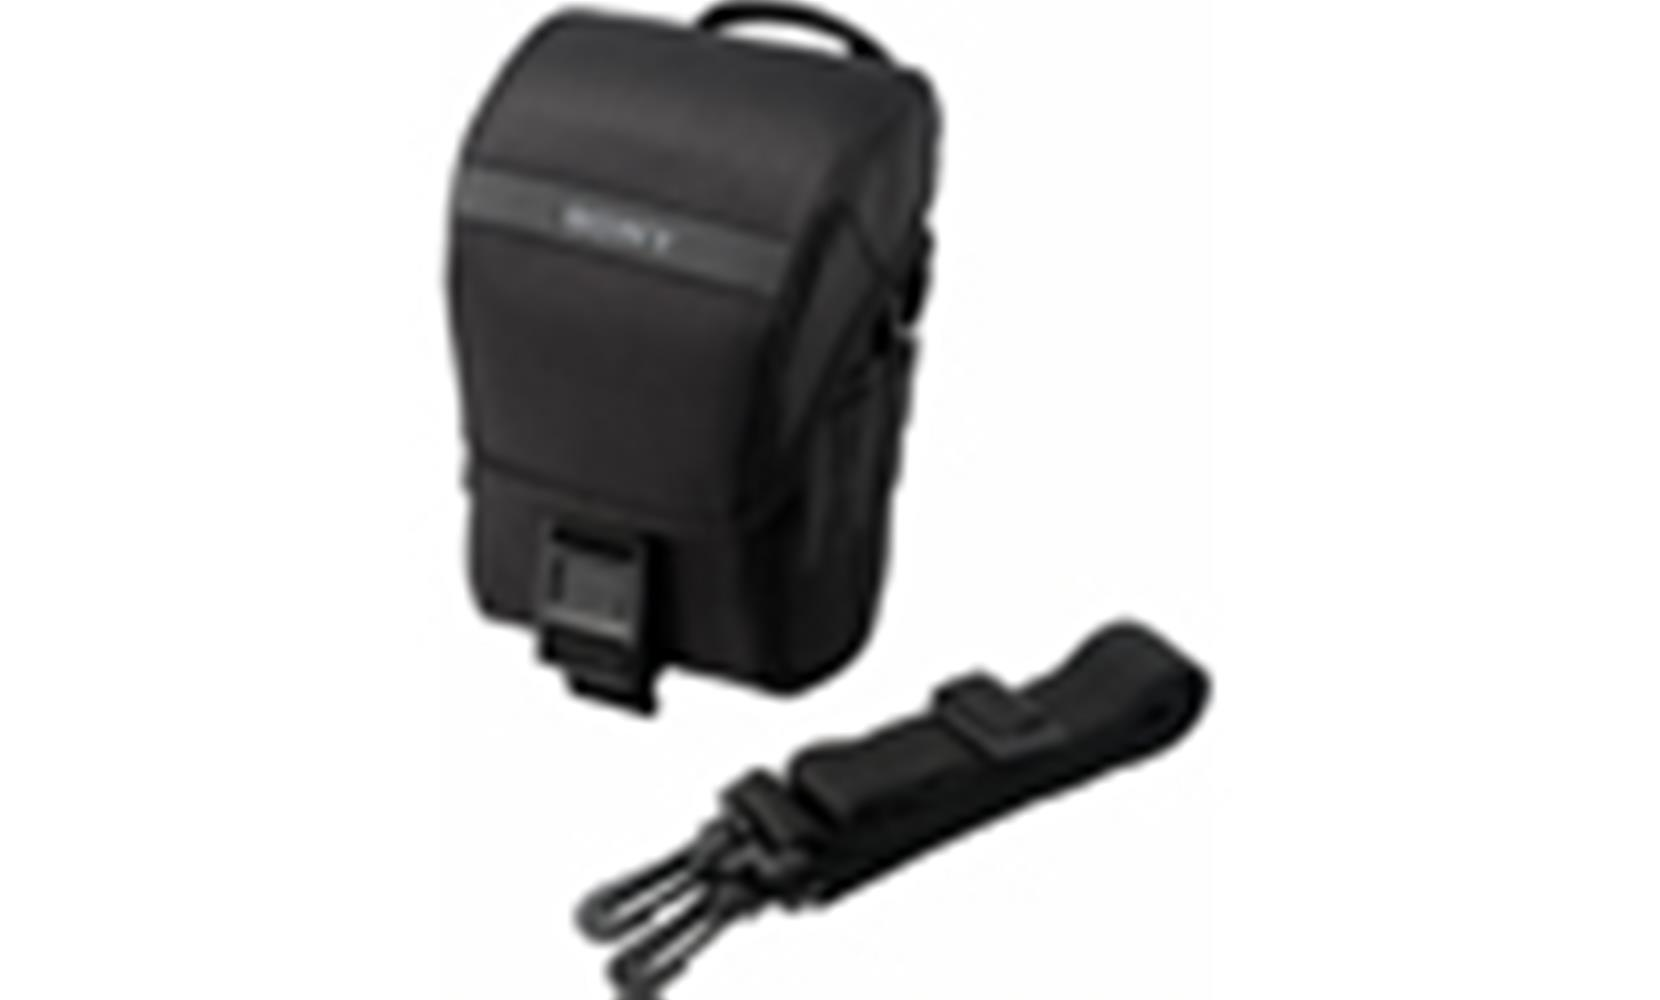 SONY LCSMX50 MODULAR CARRYING CASE